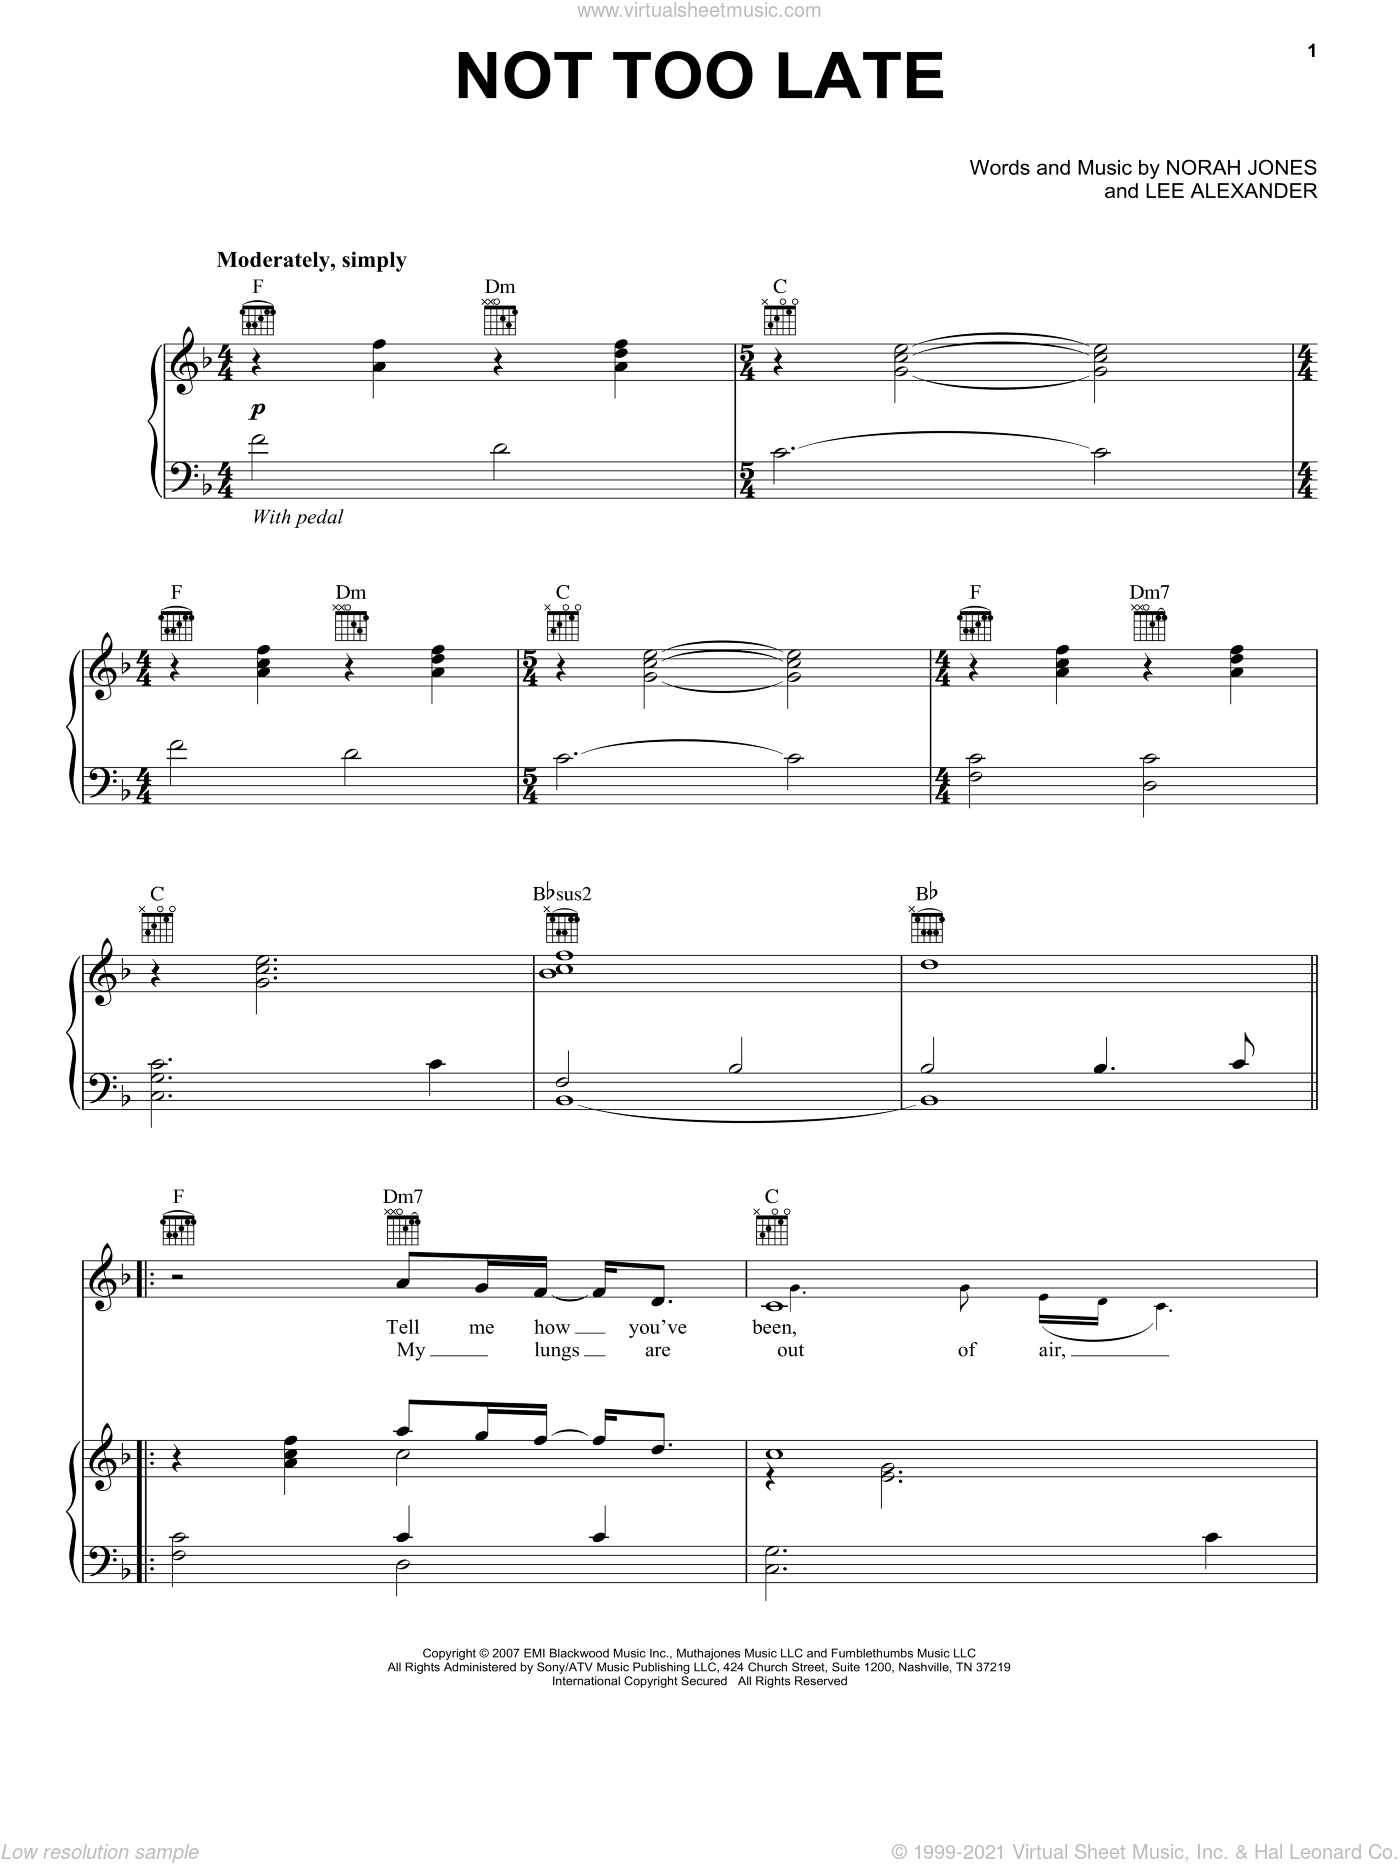 Not Too Late sheet music for voice, piano or guitar by Lee Alexander and Norah Jones